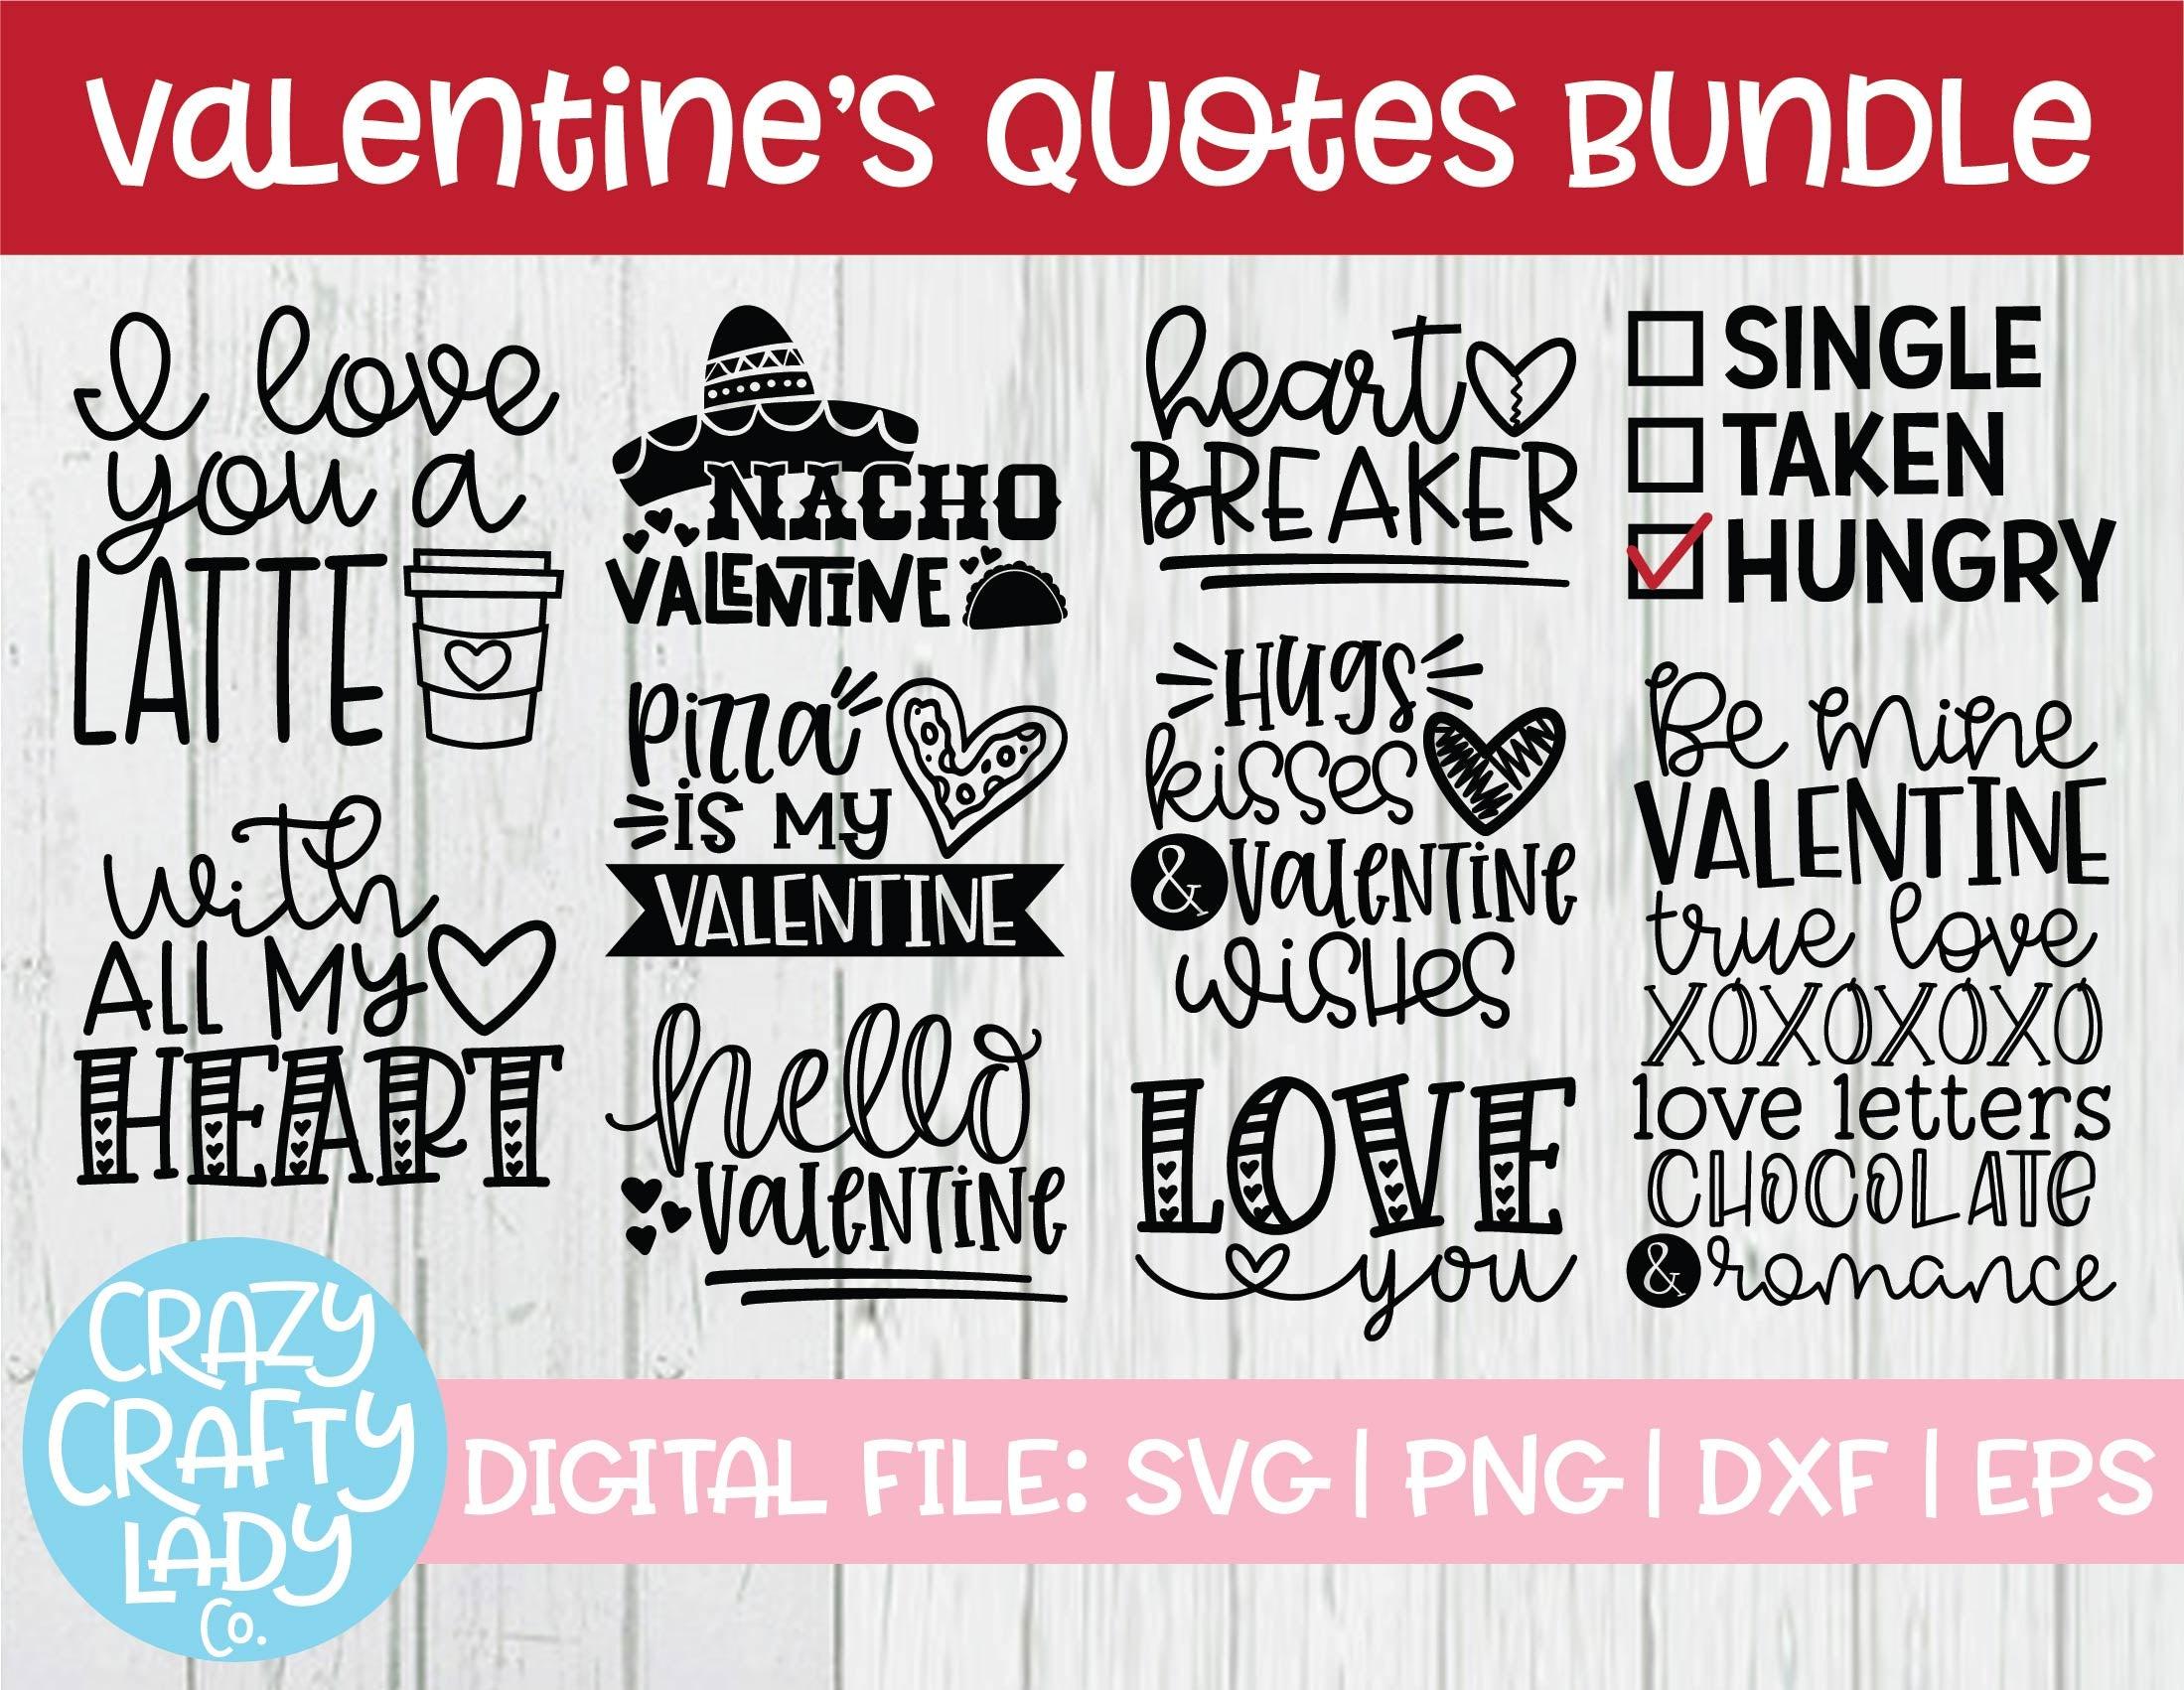 Valentine S Day Quotes Bundle Svg Cut File Crazy Crafty Lady Co